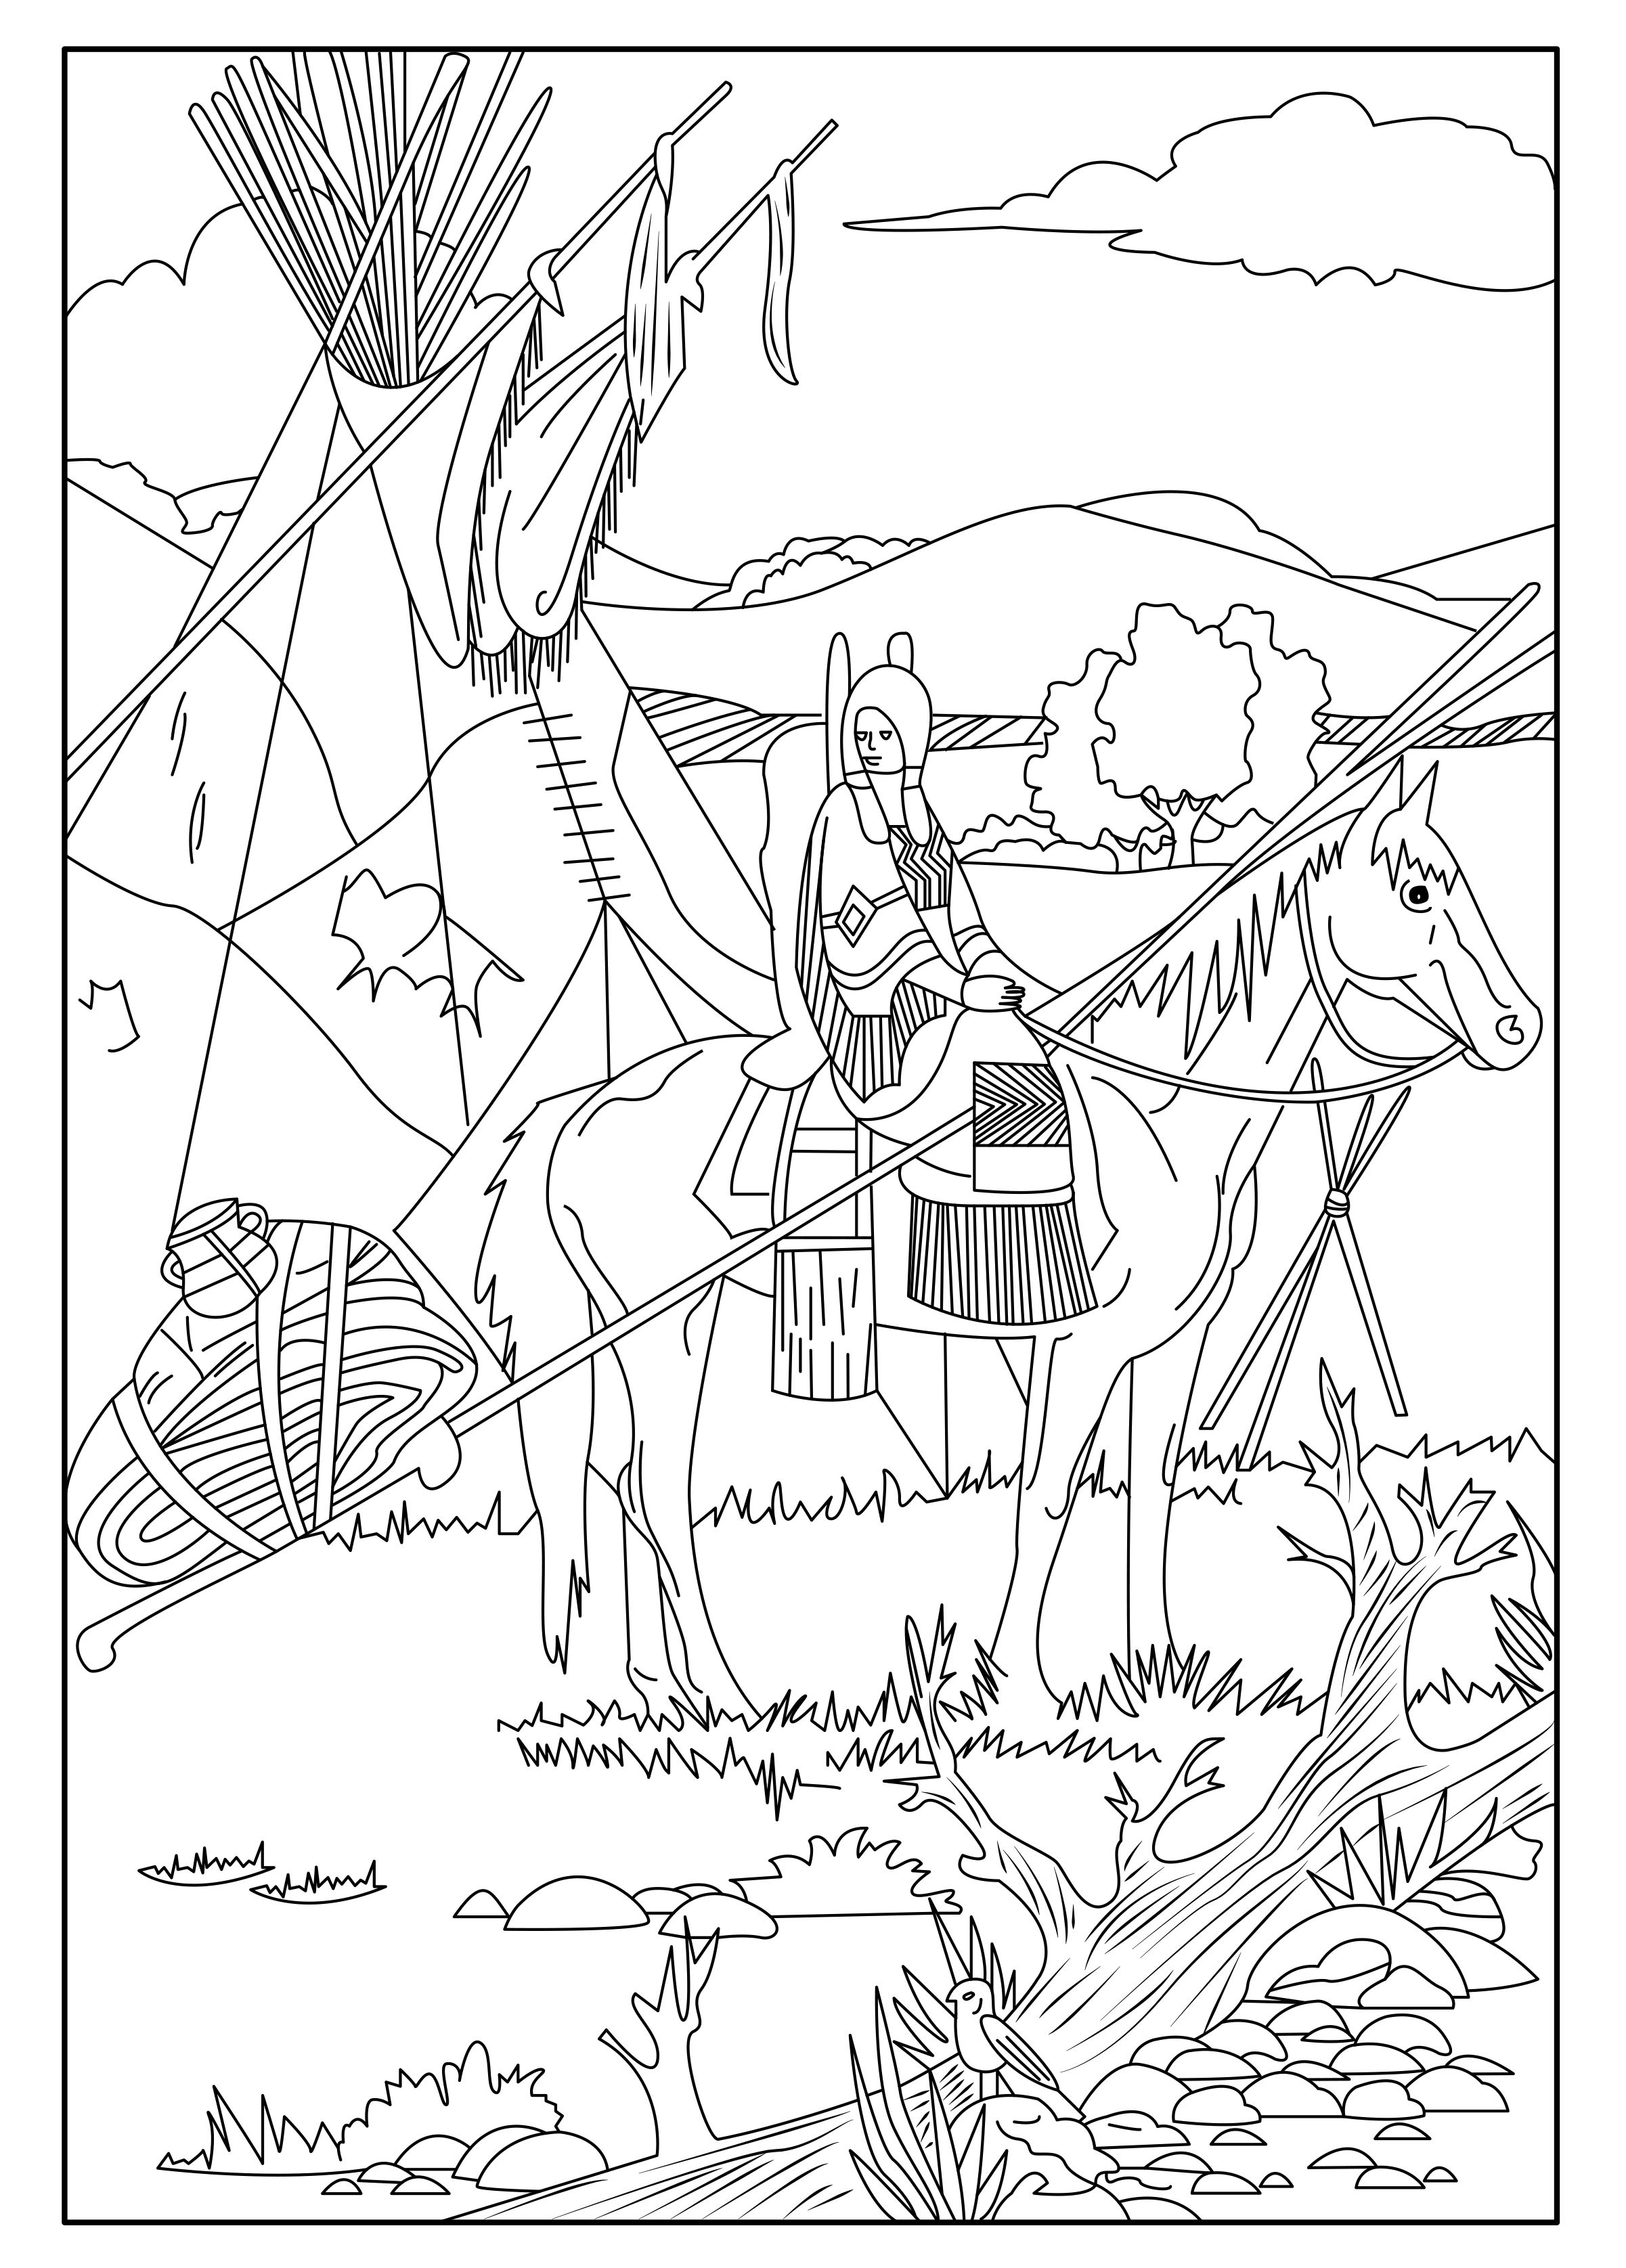 This coloring page show a native american on his horse